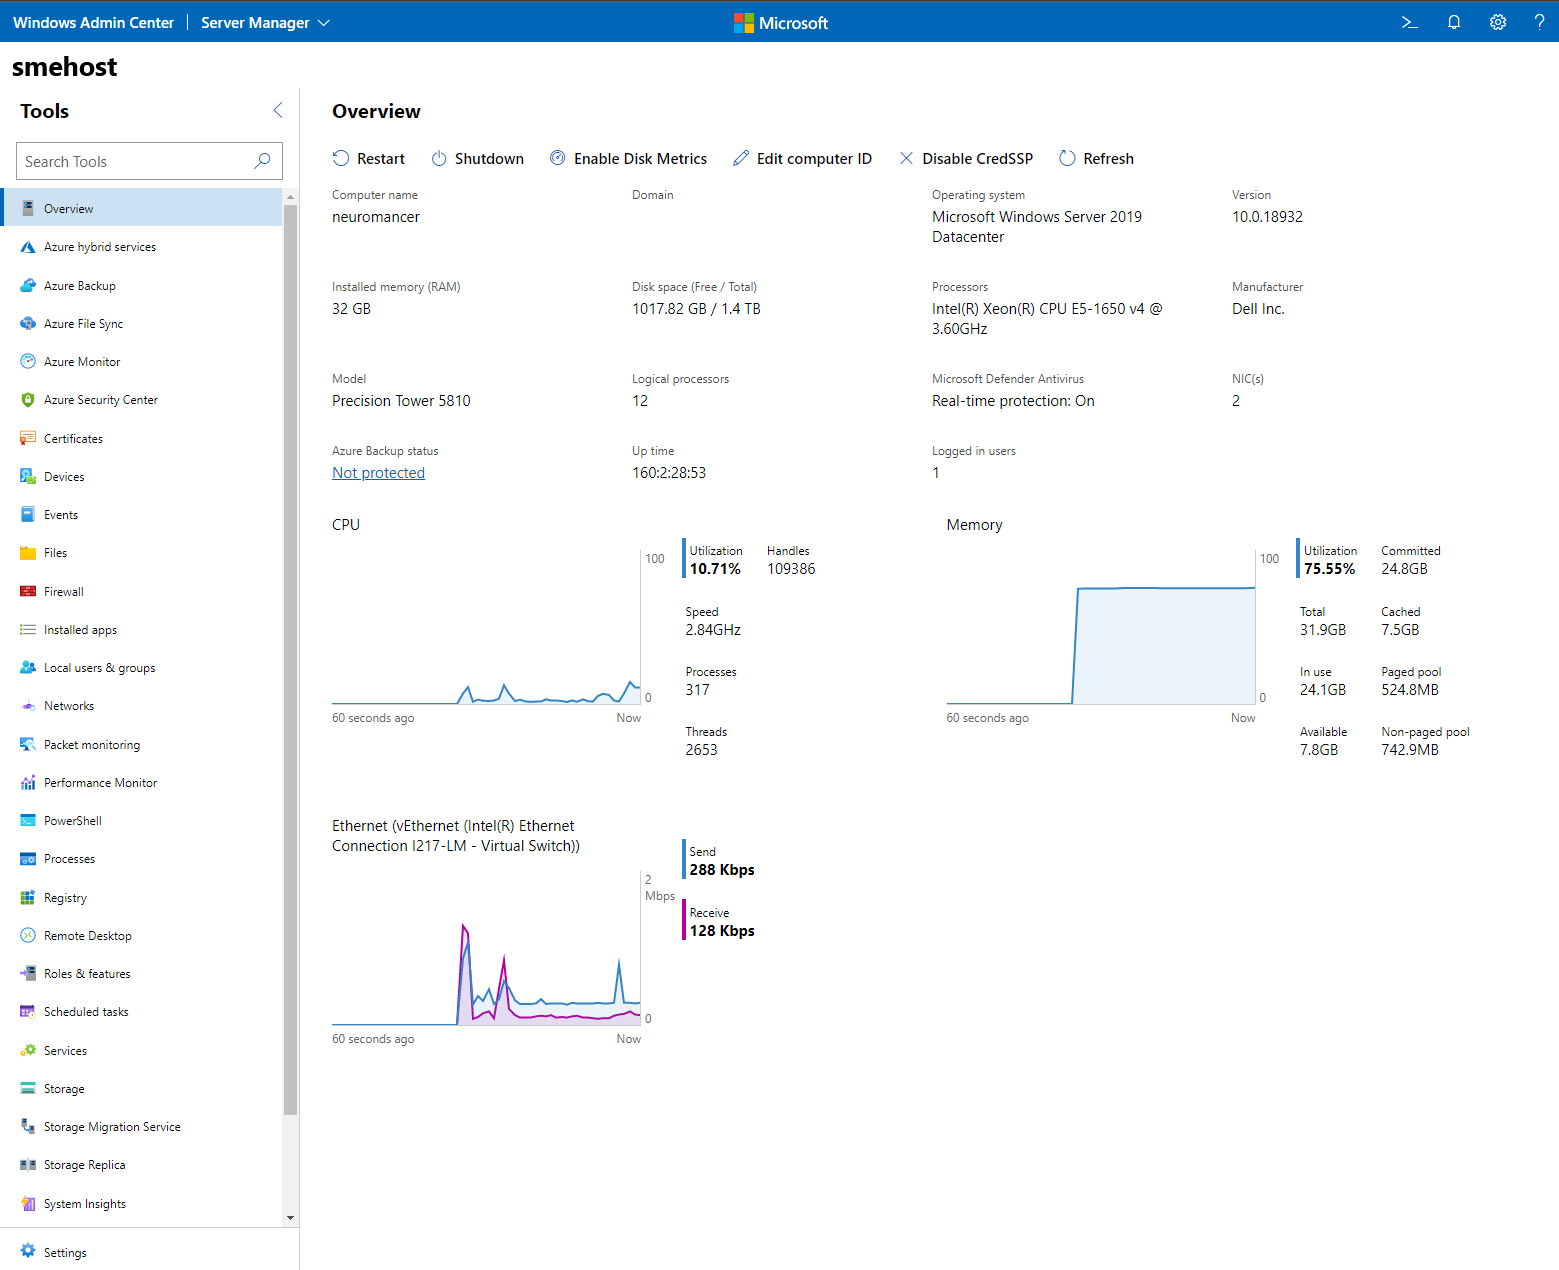 Manage Servers with Windows Admin Center | Microsoft Docs